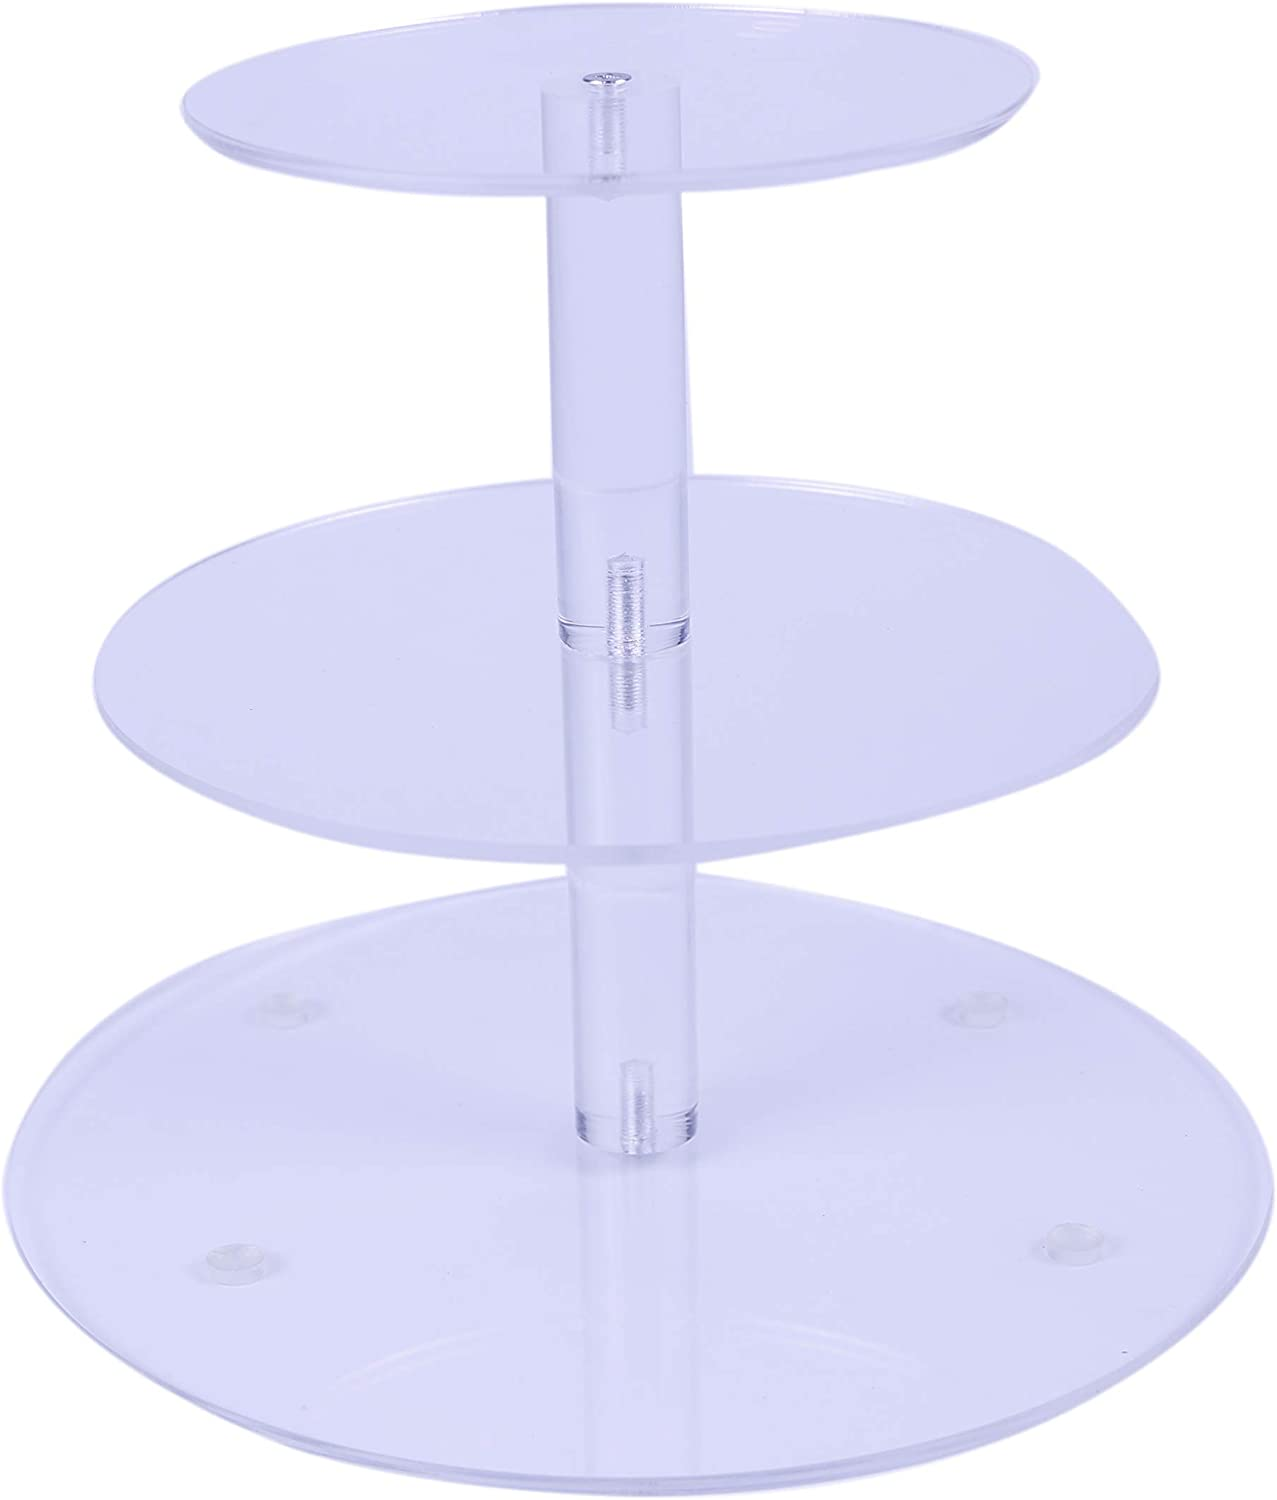 HMROVOOM Round Acrylic Cupcake Stand,Cupcake Tier Stands,Cupcake Holder Rack for Wedding Party Birthday 3 Tier Round(6